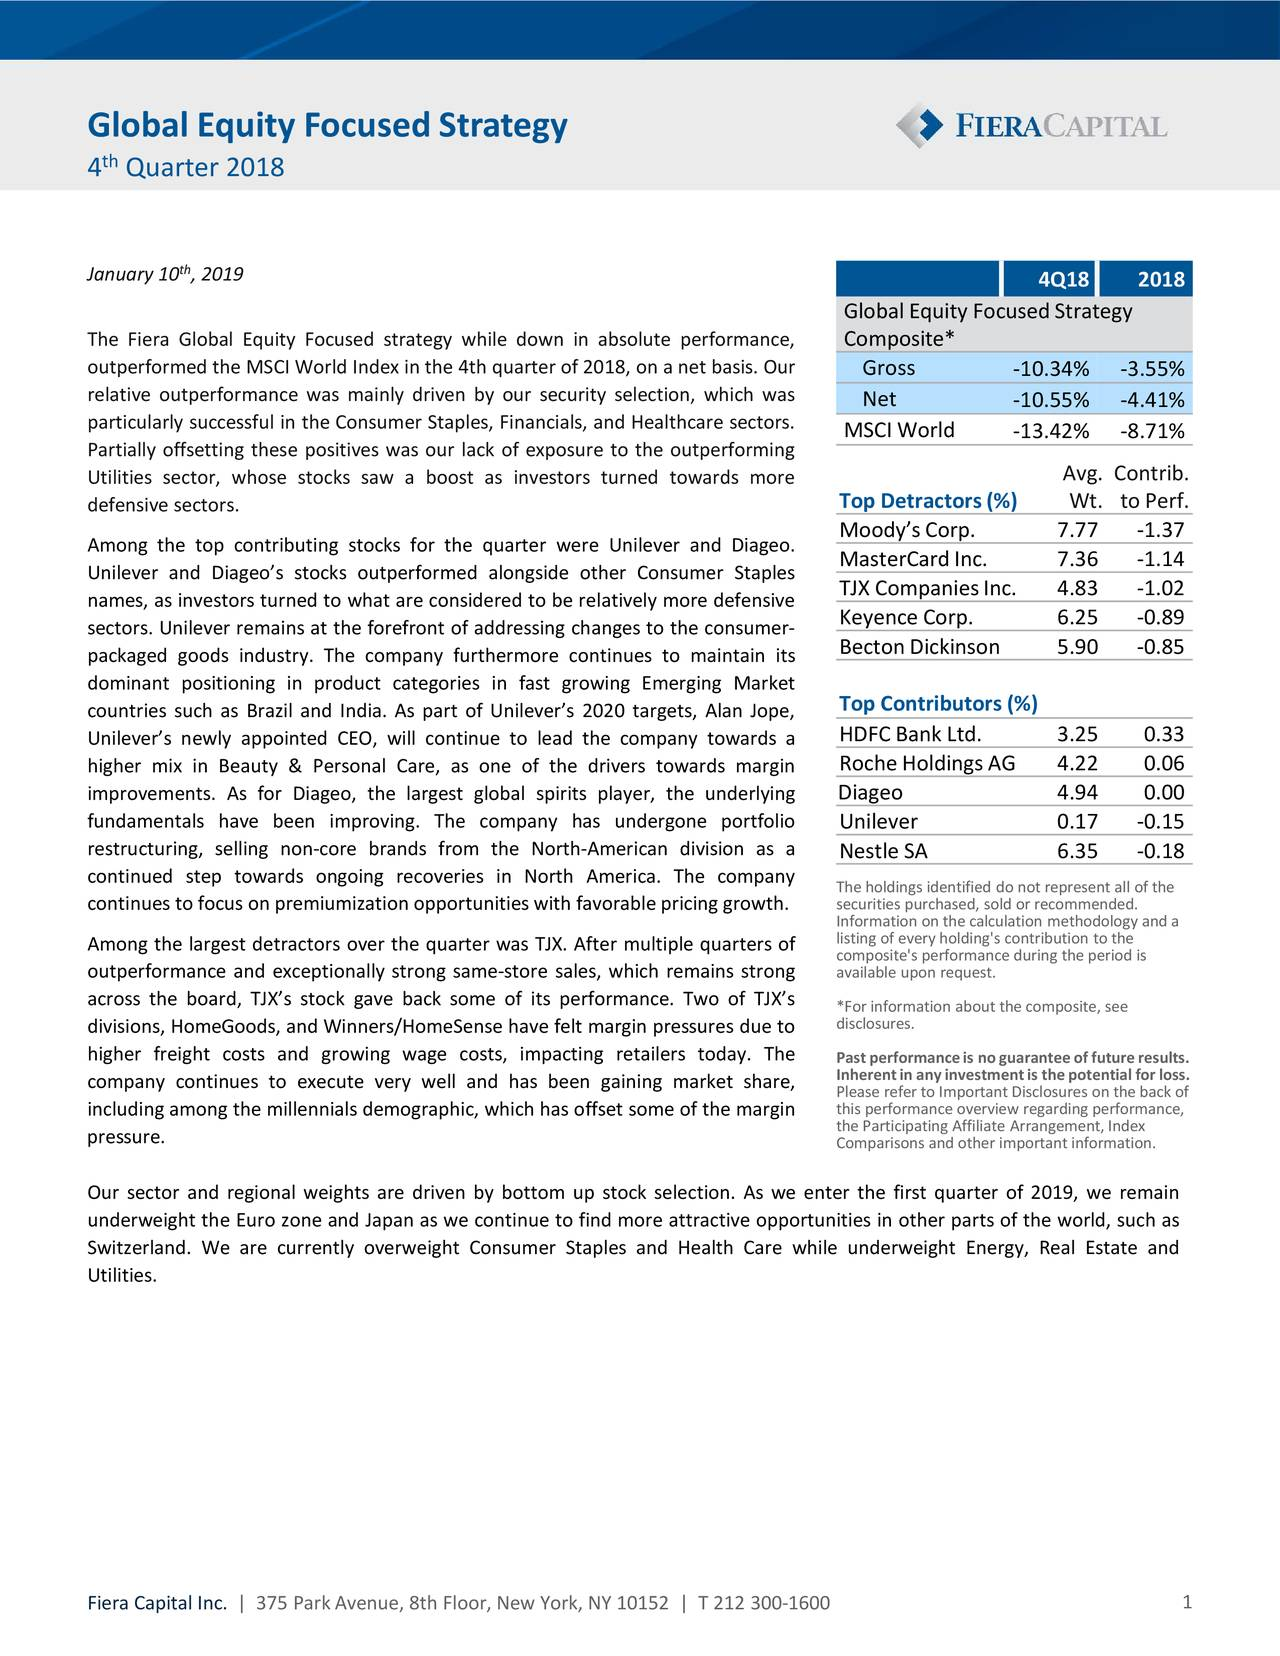 4 Quarter 2018 January 10 , 2019 4Q18 2018 Global Equity FocusedStrategy The Fiera Global Equity Focused strategy while down in absolute performance, Composite* outperformed the MSCI World Index in the 4th quarter of 2018, on a net basis. Our Gross -10.34% -3.55% relative outperformance was mainly driven by our security selection, which was Net -10.55% -4.41% particularly successful in the Consumer Staples, Financials, and Healthcare sectors. MSCIWorld -13.42% -8.71% Partially offsetting these positives was our lack of exposure to the outperforming Utilities sector, whose stocks saw a boost as investors turned towards more Avg. Contrib. defensive sectors. Top Detractors (%) Wt. to Perf. Among the top contributing stocks for the quarter were Unilever and Diageo. Moody's Corp. 7.77 -1.37 MasterCard Inc. 7.36 -1.14 Unilever and Diageo's stocks outperformed alongside other Consumer Staples TJX Companies Inc. 4.83 -1.02 names, as investors turned to what are considered to be relatively more defensive sectors. Unilever remains at the forefront of addressing changes to the consumer- Keyence Corp. 6.25 -0.89 Becton Dickinson 5.90 -0.85 packaged goods industry. The company furthermore continues to maintain its dominant positioning in product categories in fast growing Emerging Market countries such as Brazil and India. As part of Unilever's 2020 targets, Alan Jope, Top Contributors (%) HDFC Bank Ltd. 3.25 0.33 Unilever's newly appointed CEO, will continue to lead the company towards a higher mix in Beauty & Personal Care, as one of the drivers towards margin Roche Holdings AG 4.22 0.06 improvements. As for Diageo, the largest global spirits player, the underlying Diageo 4.94 0.00 fundamentals have been improving. The company has undergone portfolio Unilever 0.17 -0.15 restructuring, selling non-core brands from the North-American division as a Nestle SA 6.35 -0.18 continued step towards ongoing recoveries in North America. The company continues to focus on premiumization opp